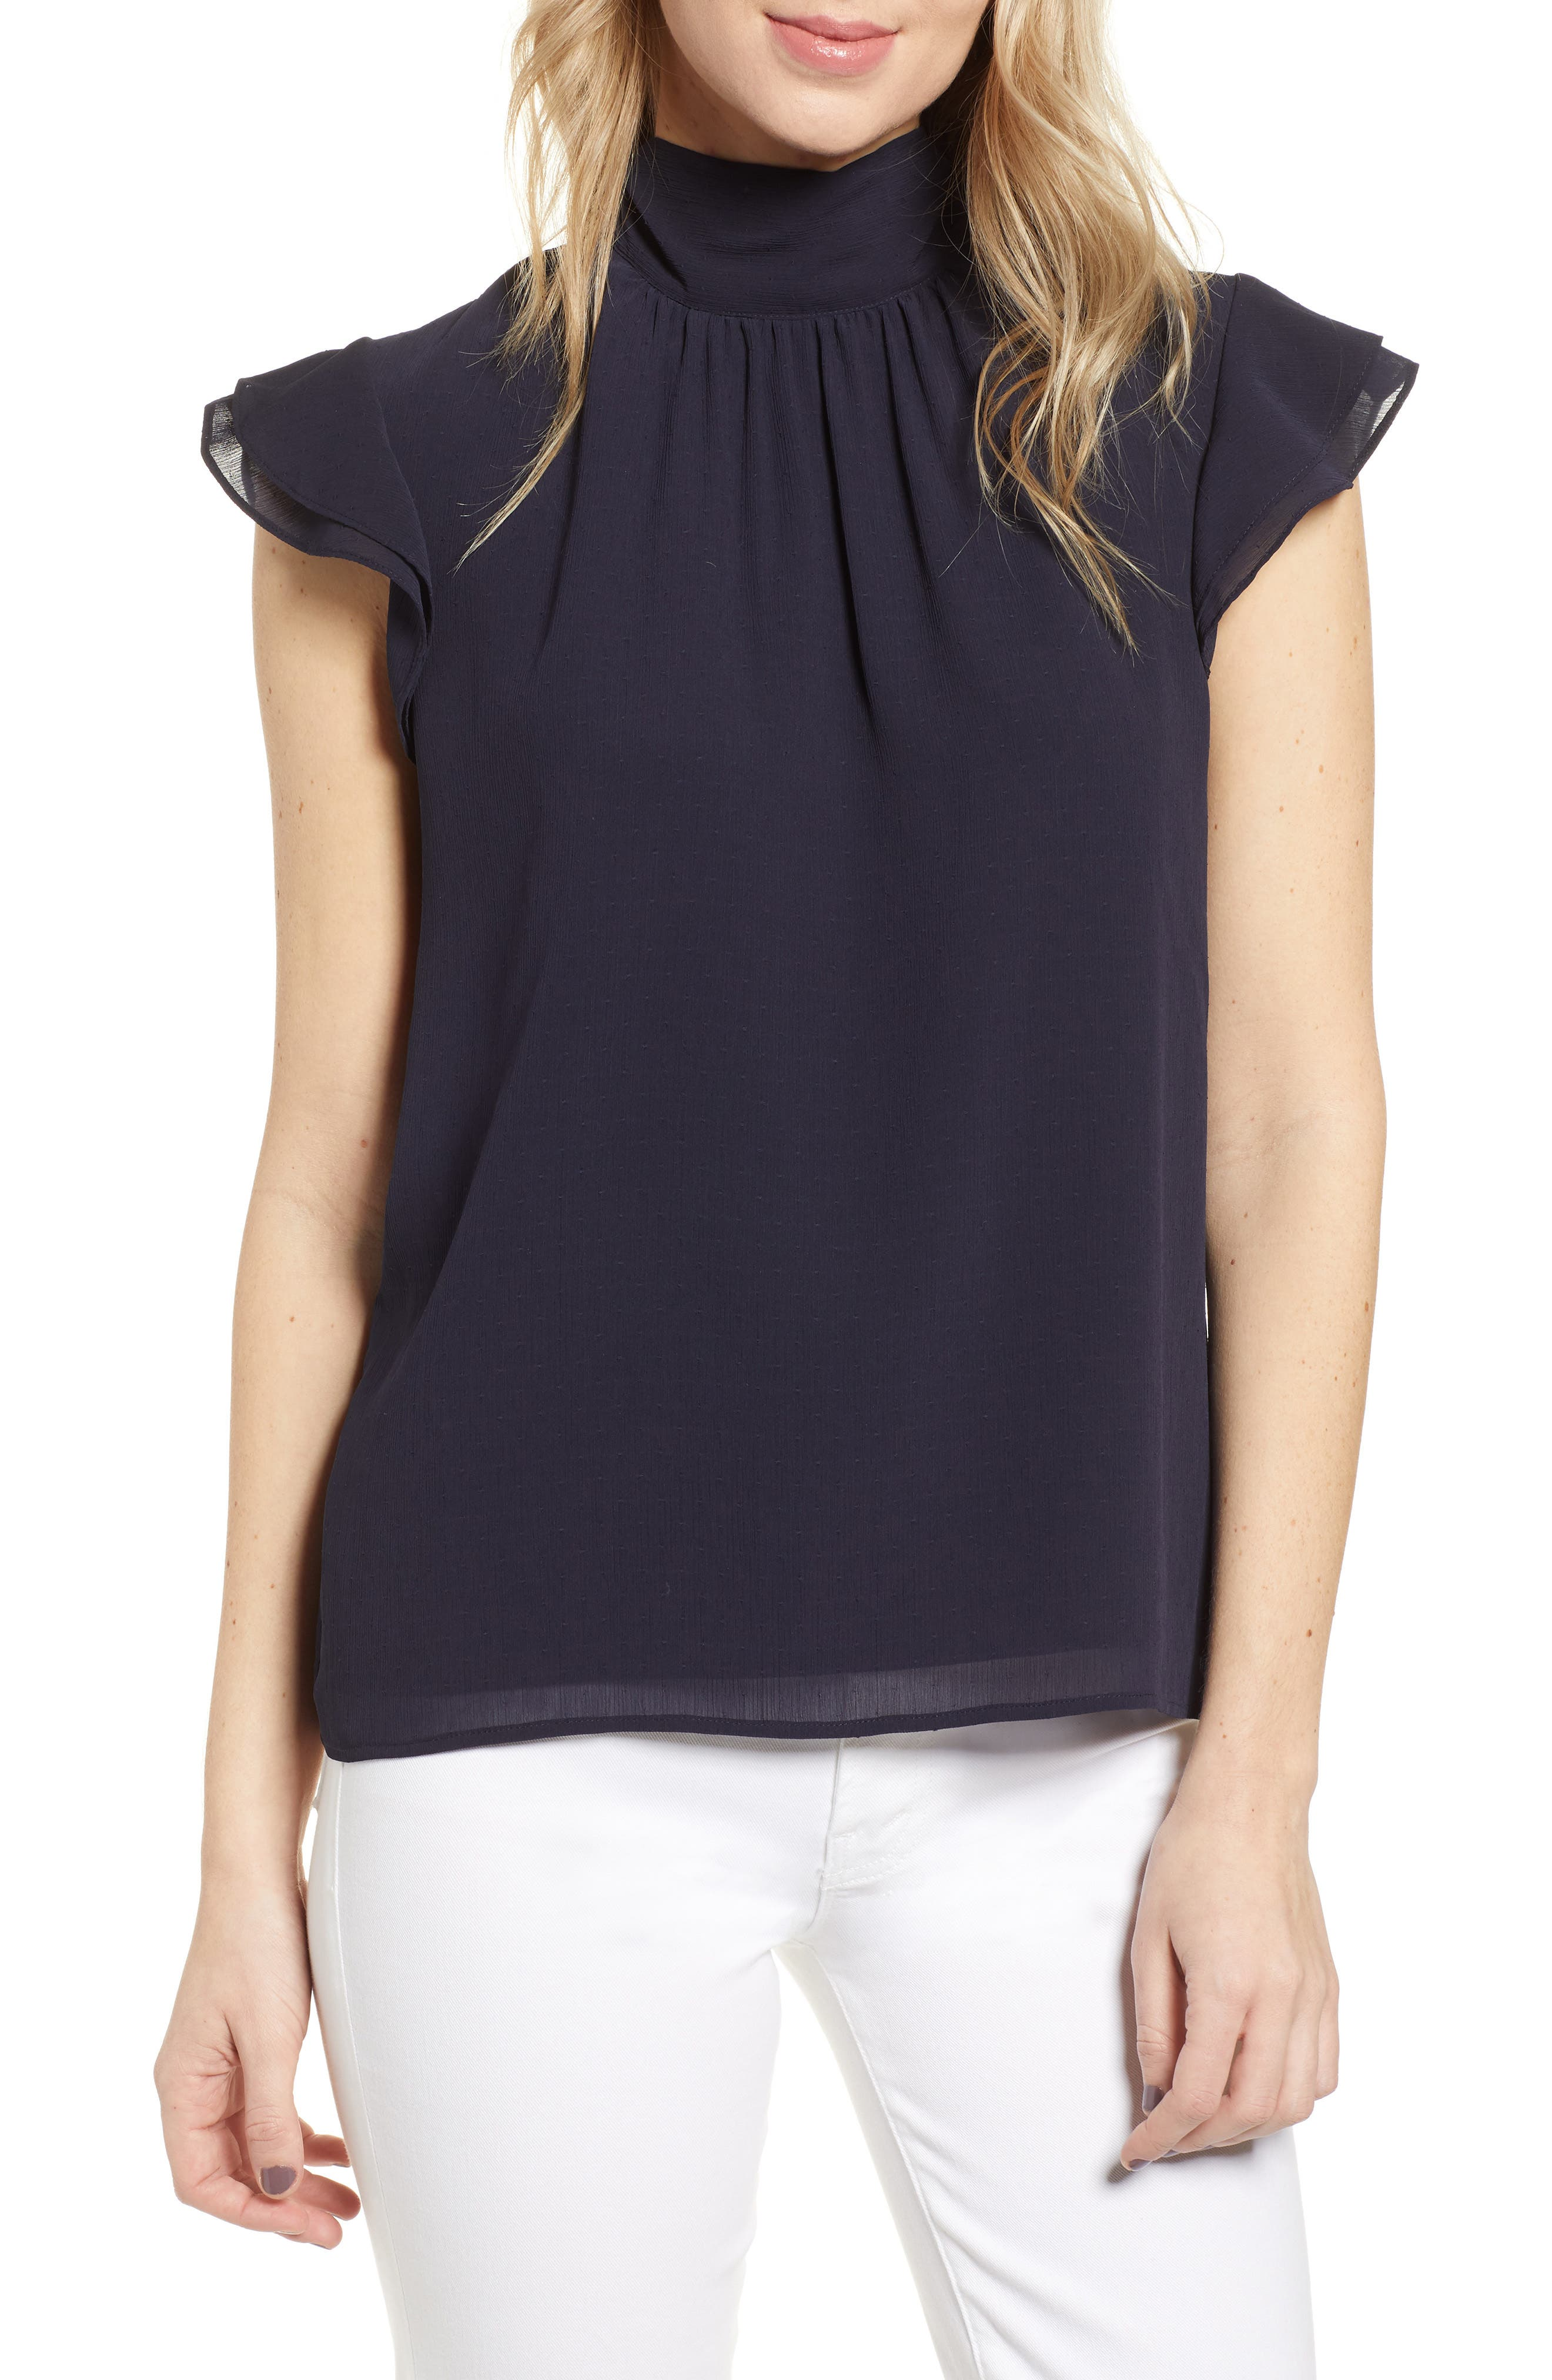 CHELSEA28 Dotted Crinkle Chiffon Top, Main, color, NAVY NIGHT